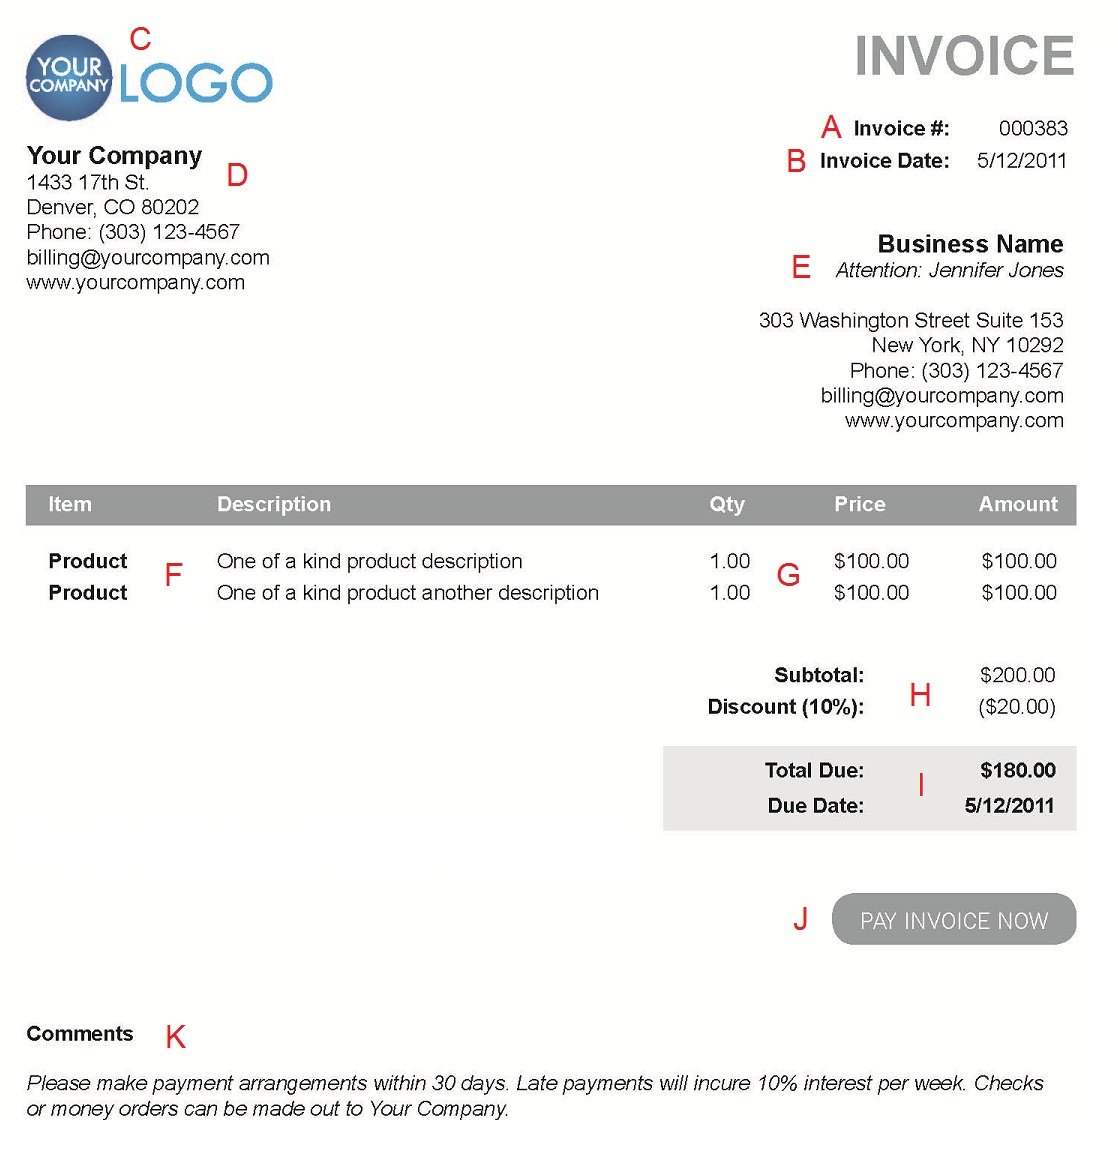 Picnictoimpeachus  Marvelous The  Different Sections Of An Electronic Payment Invoice With Magnificent A  With Agreeable Invoices And Estimates Pro Also Rav Invoice Price In Addition Intuit Invoices And Microsoft Office Invoice Templates As Well As Examples Of An Invoice Additionally Fedex Commerical Invoice From Paysimplecom With Picnictoimpeachus  Magnificent The  Different Sections Of An Electronic Payment Invoice With Agreeable A  And Marvelous Invoices And Estimates Pro Also Rav Invoice Price In Addition Intuit Invoices From Paysimplecom